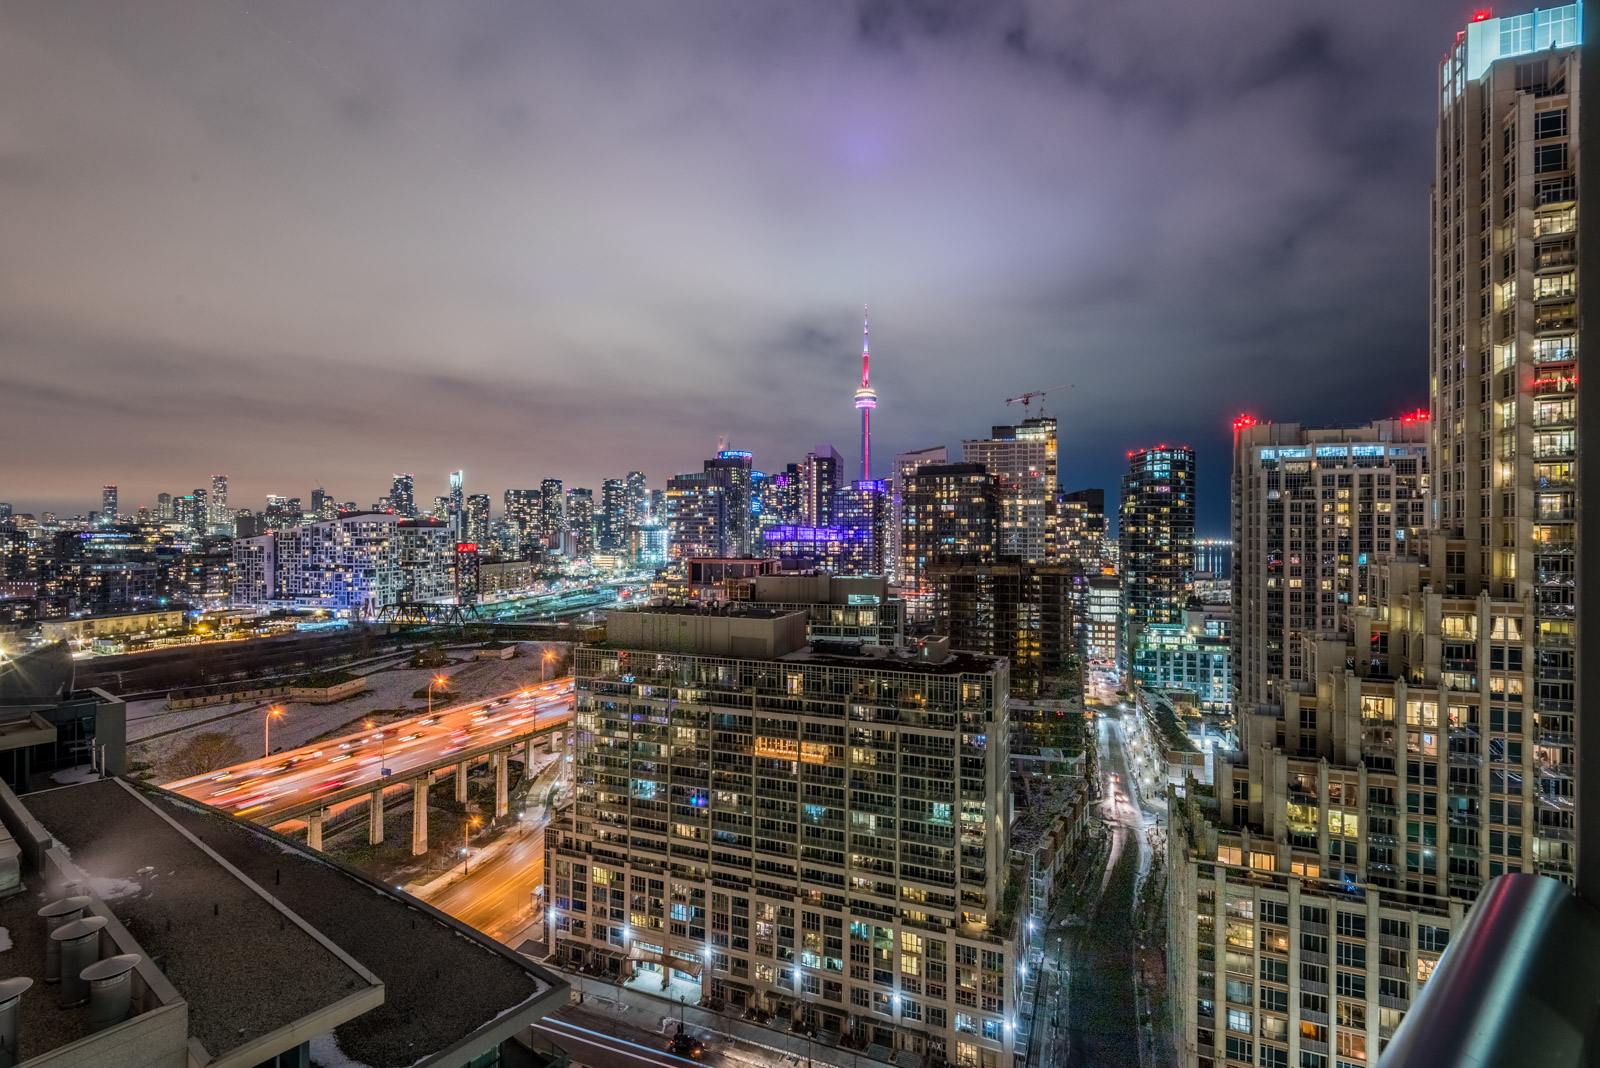 Toronto at night with brightly lit buildings and traffic.